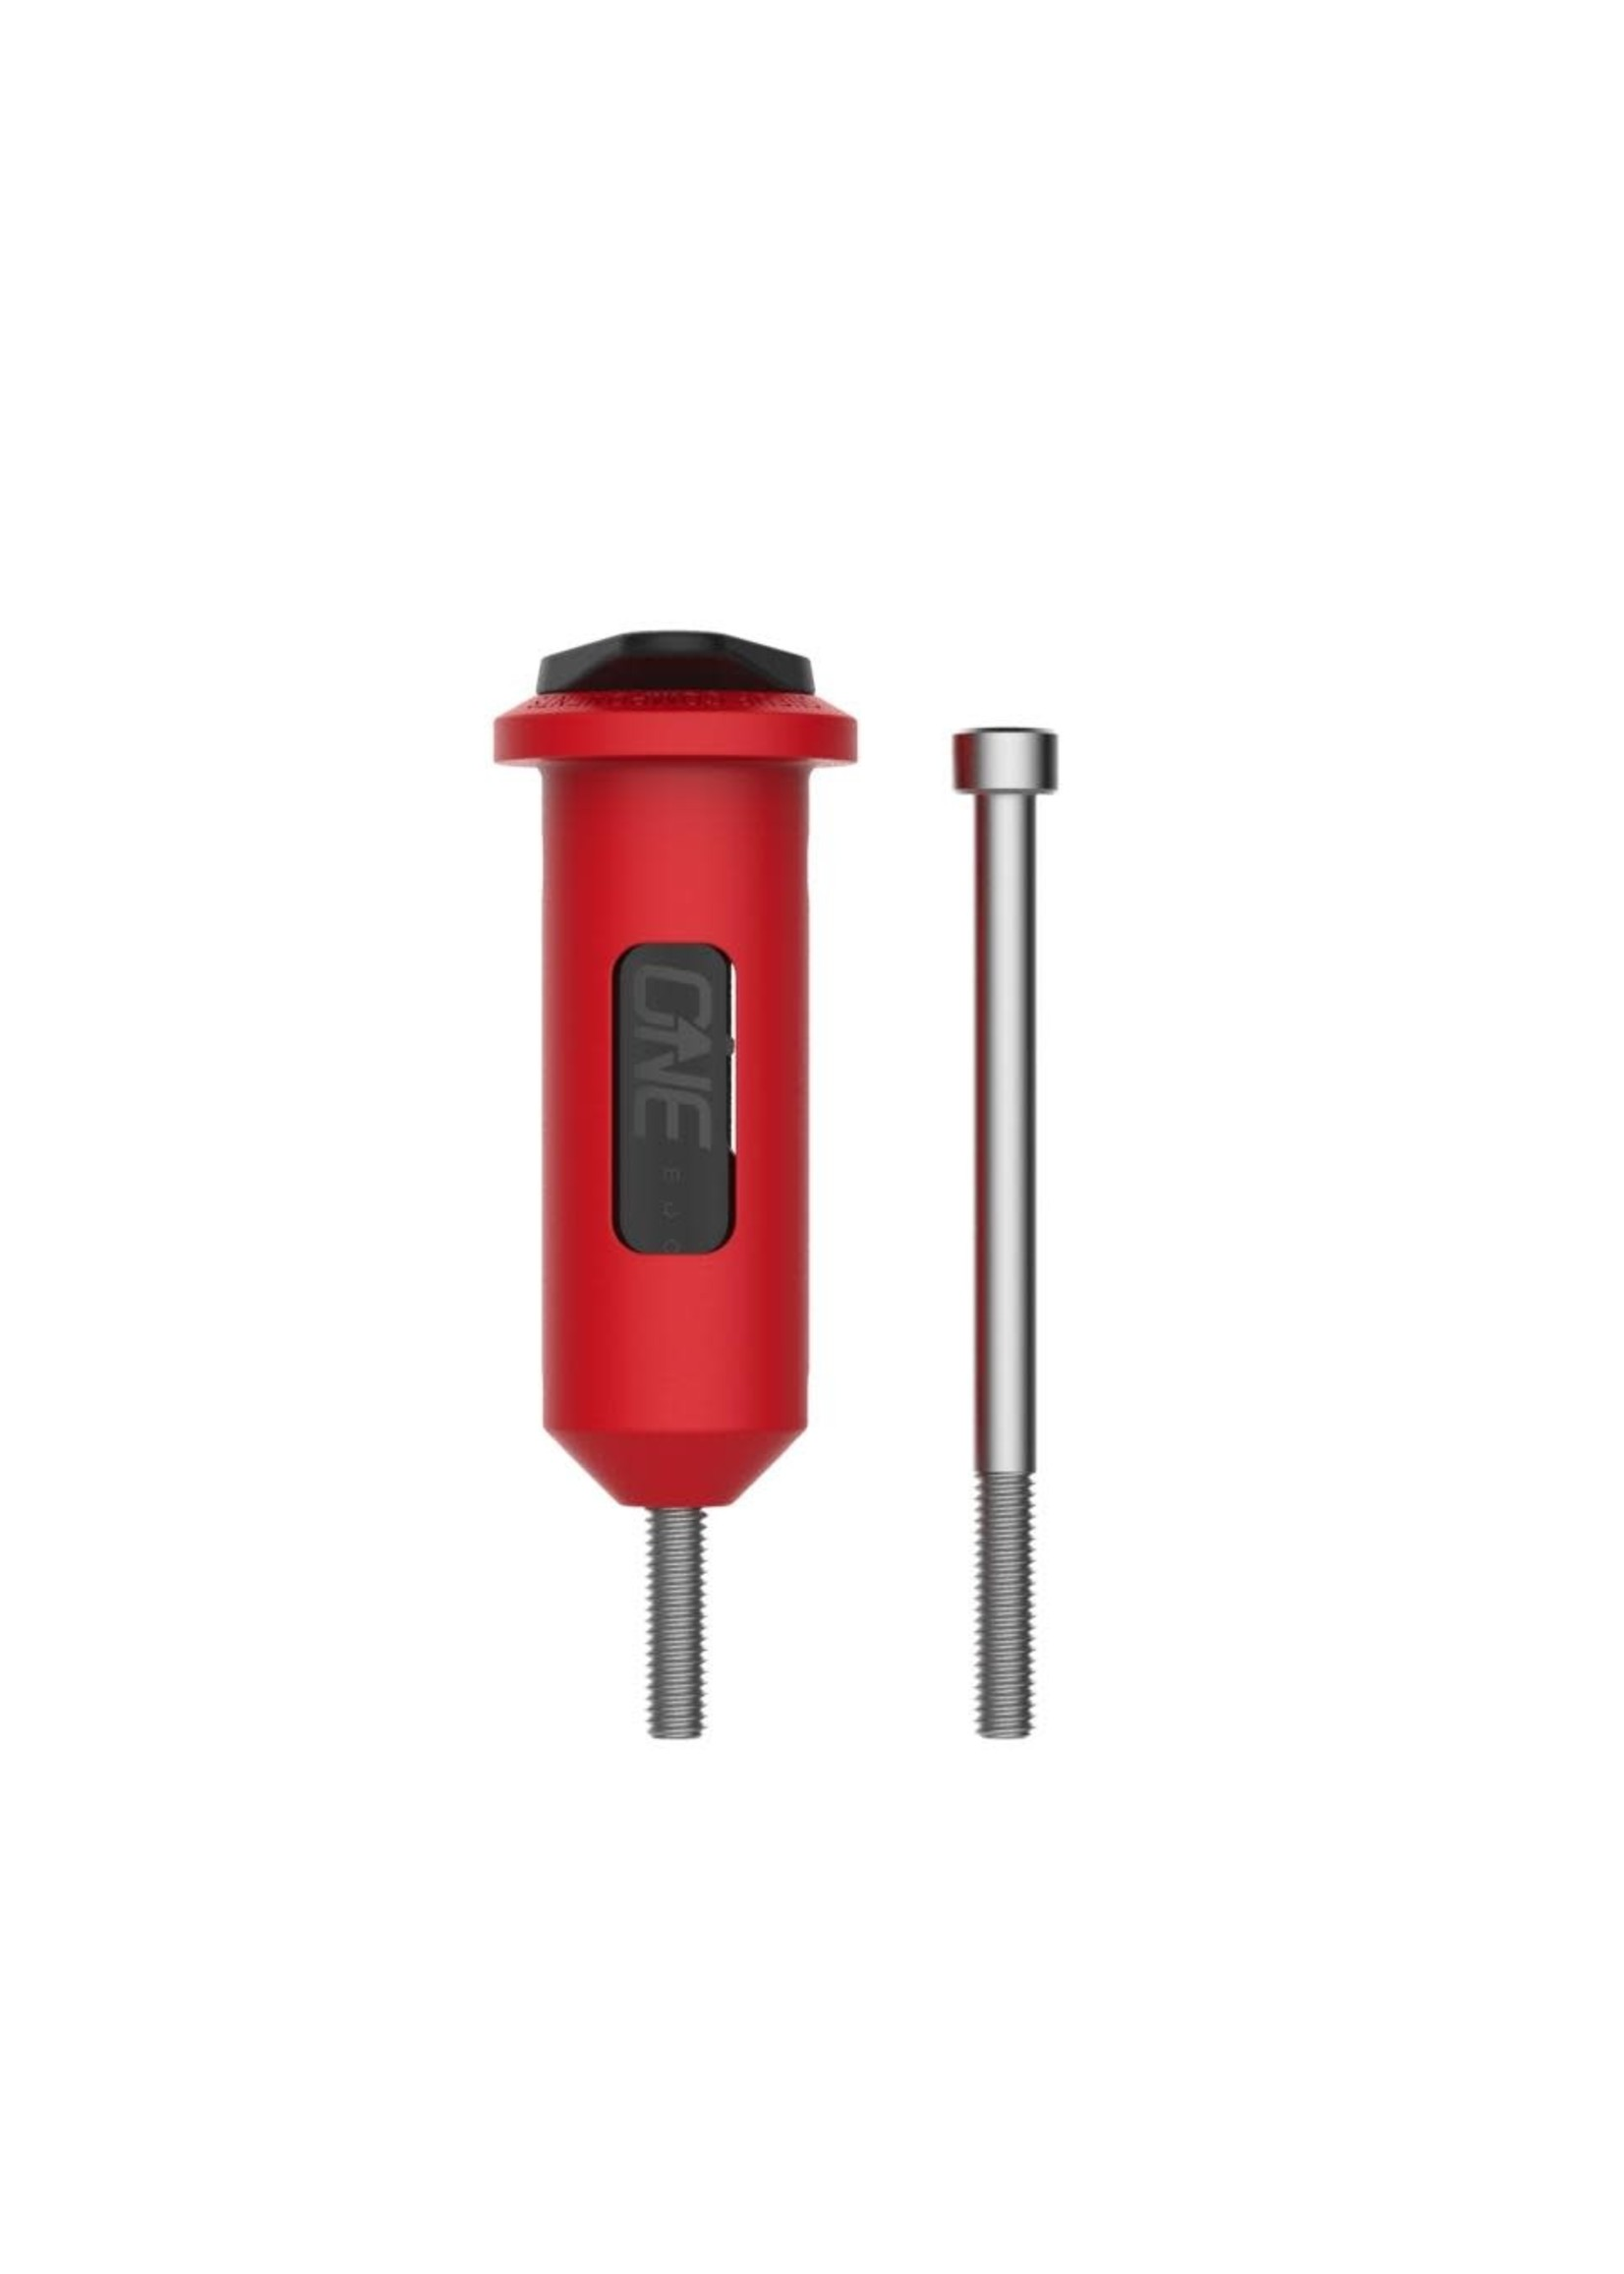 OneUp Components Oneup- EDC Lite Tool- Red